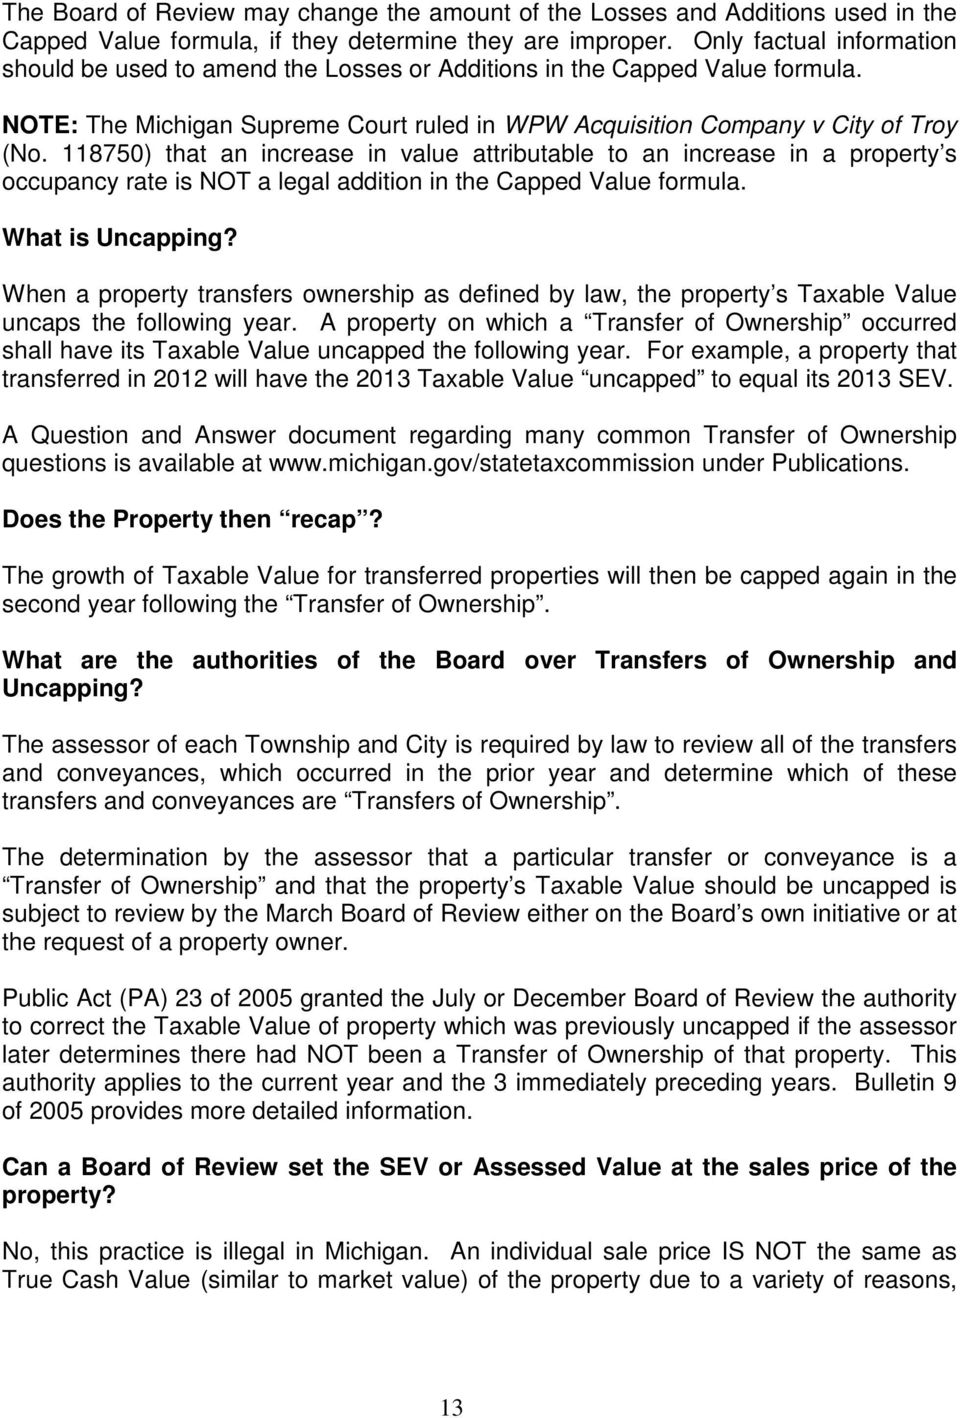 118750) that an increase in value attributable to an increase in a property s occupancy rate is NOT a legal addition in the Capped Value formula. What is Uncapping?